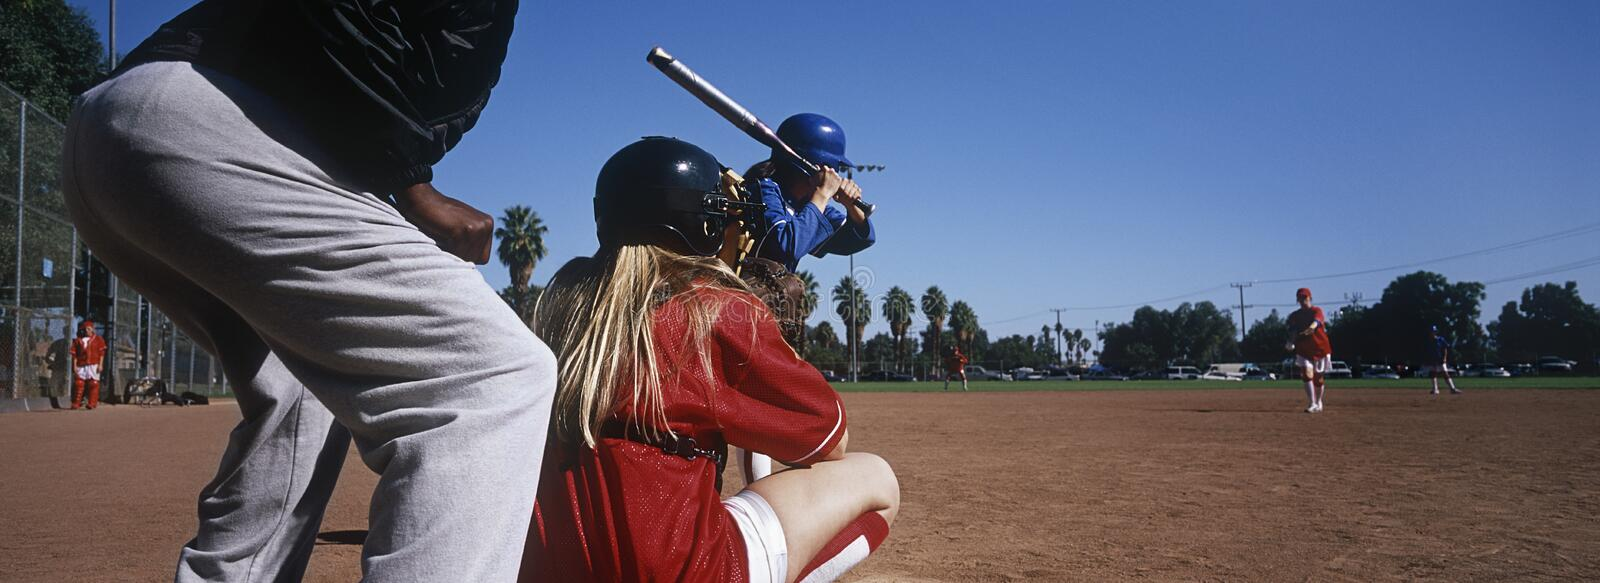 Baseball Team Practicing On Ground With Umpire. Professional female baseball team practicing on ground with umpire royalty free stock images